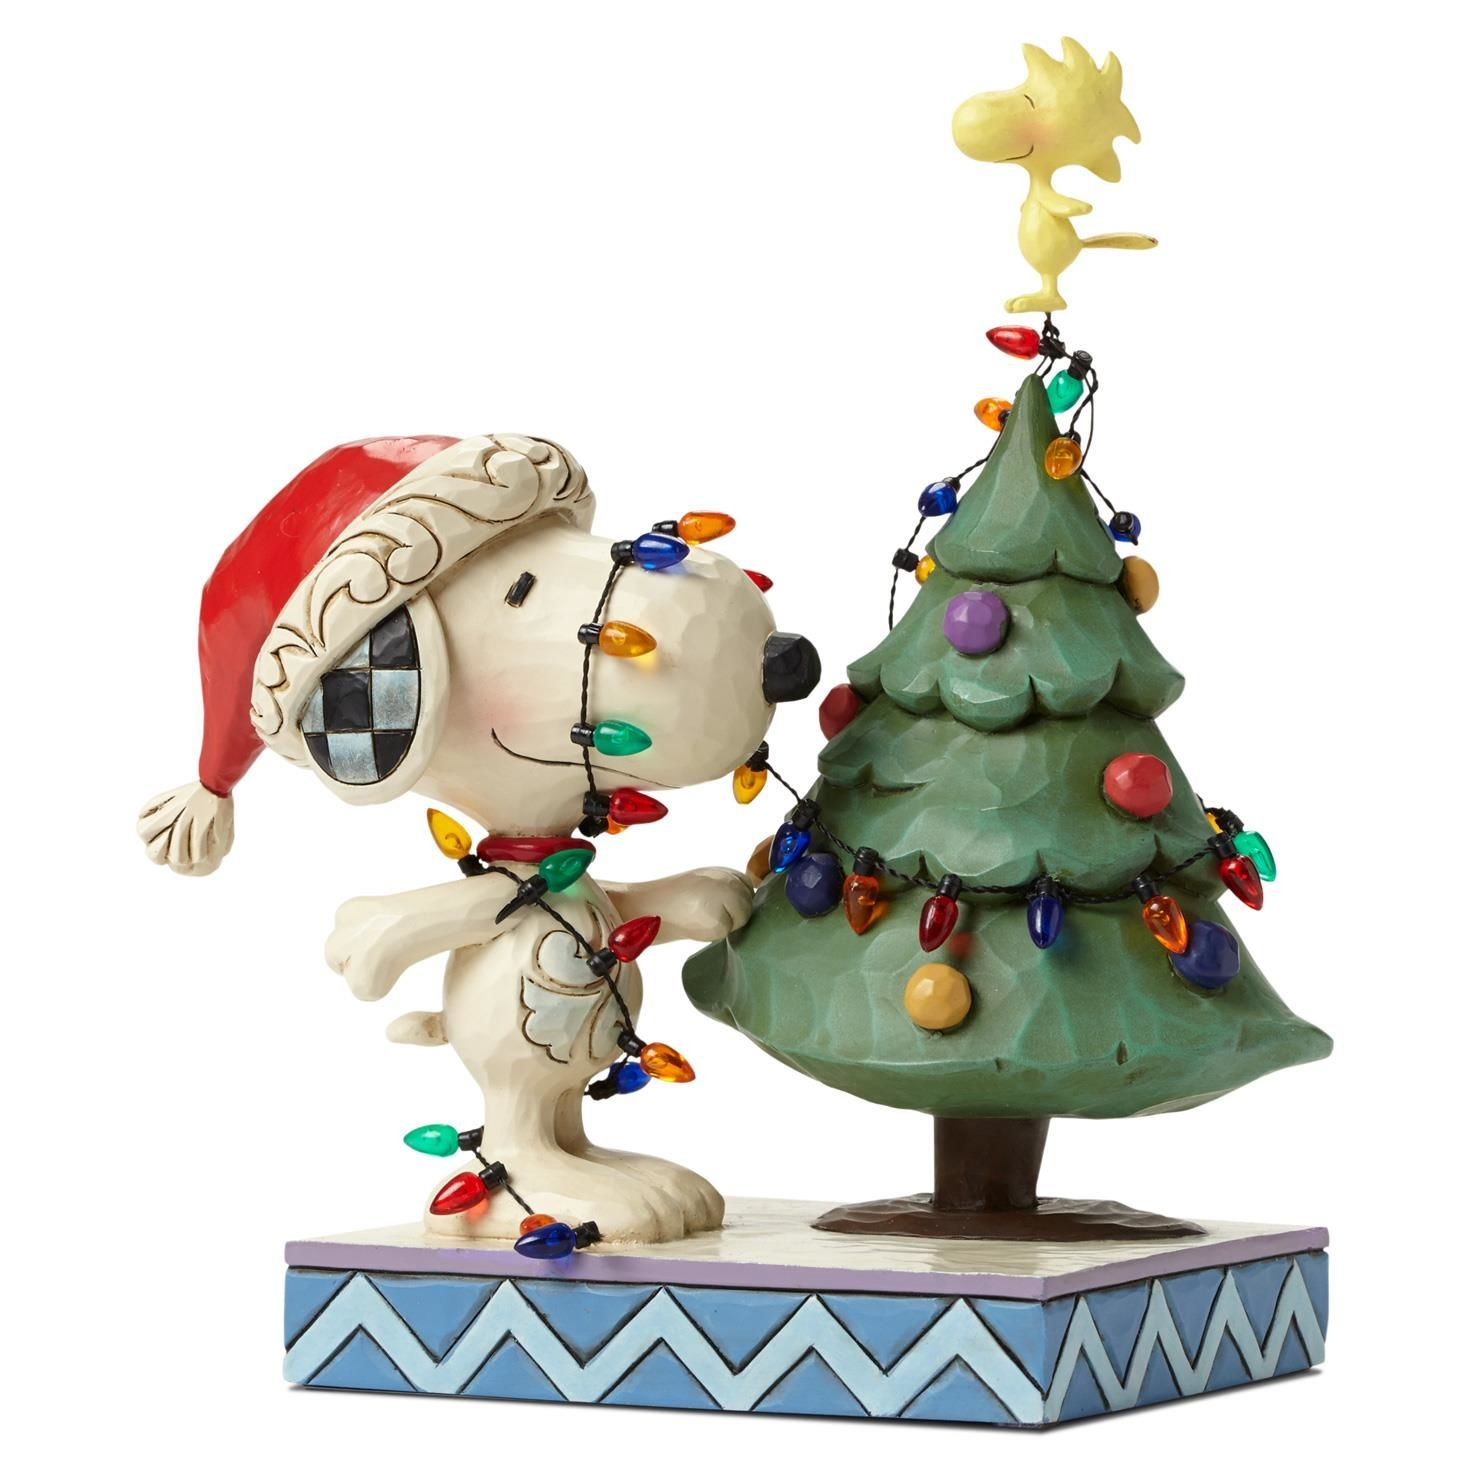 Tangled Up In Christmas Joy Snoopy And Woodstock With Christmas